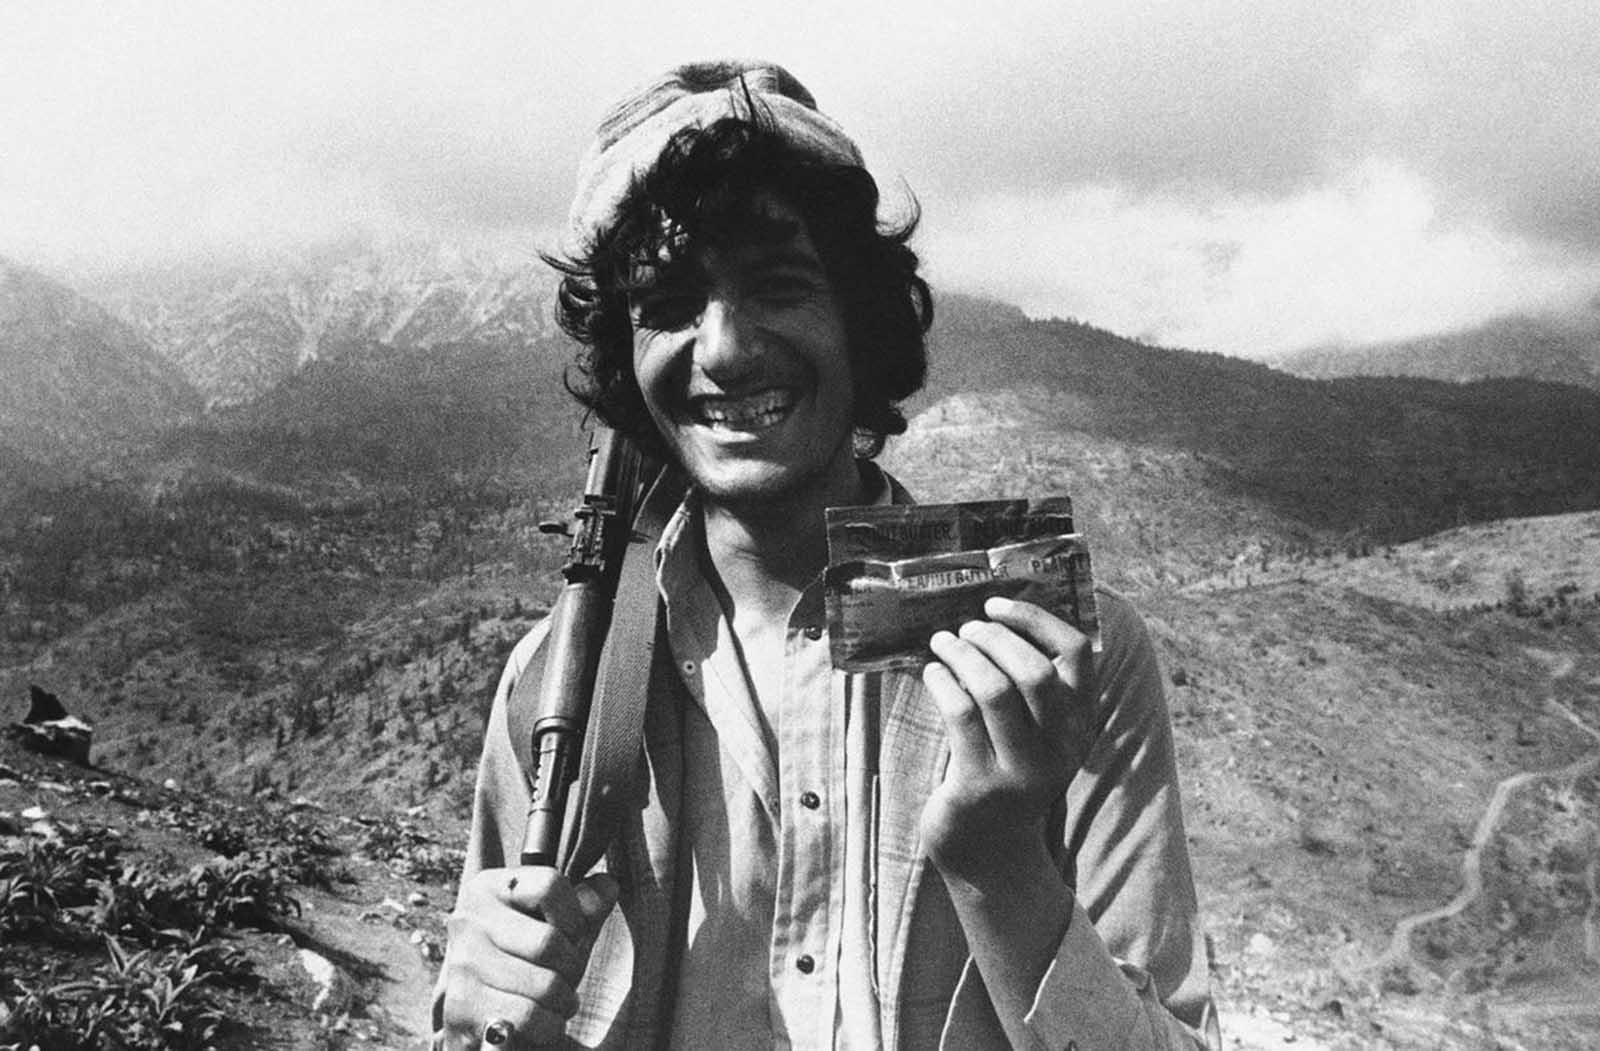 A Muslim guerrilla in Afghanistan's Paktia Province shows off his combat ration of peanut butter from the United States, on July 11, 1986. Many of his fellow guerrillas battling the Soviet-backed Communist government don't like the American food and had been throwing it away.